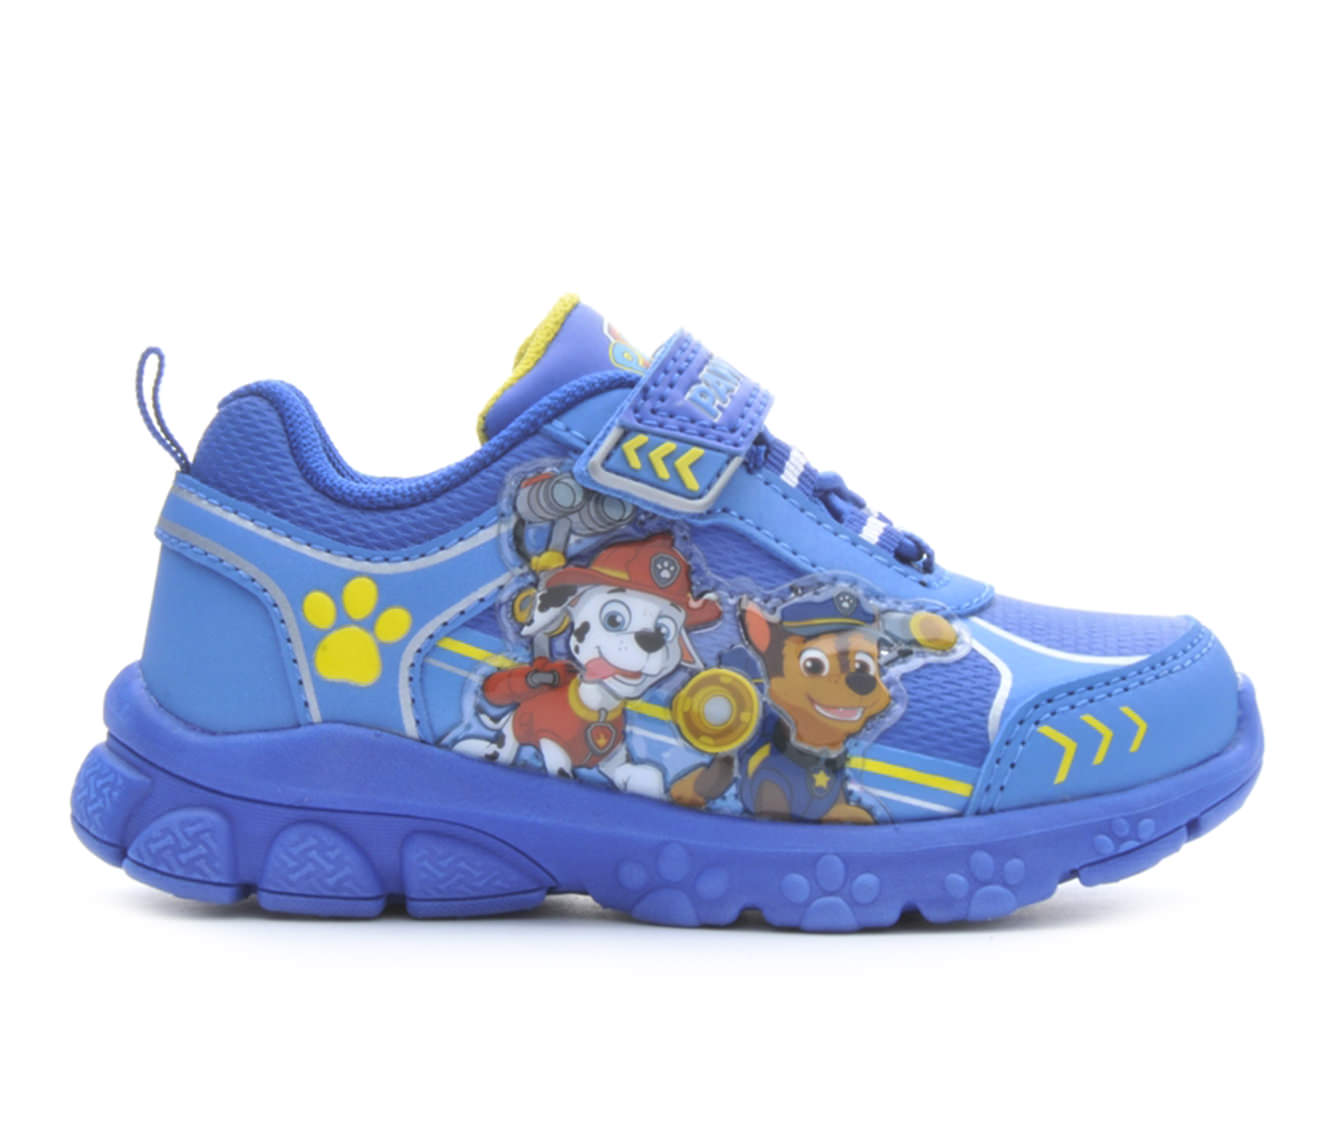 Boys' Nickelodeon Paw Patrol 2 Sneakers (Blue)